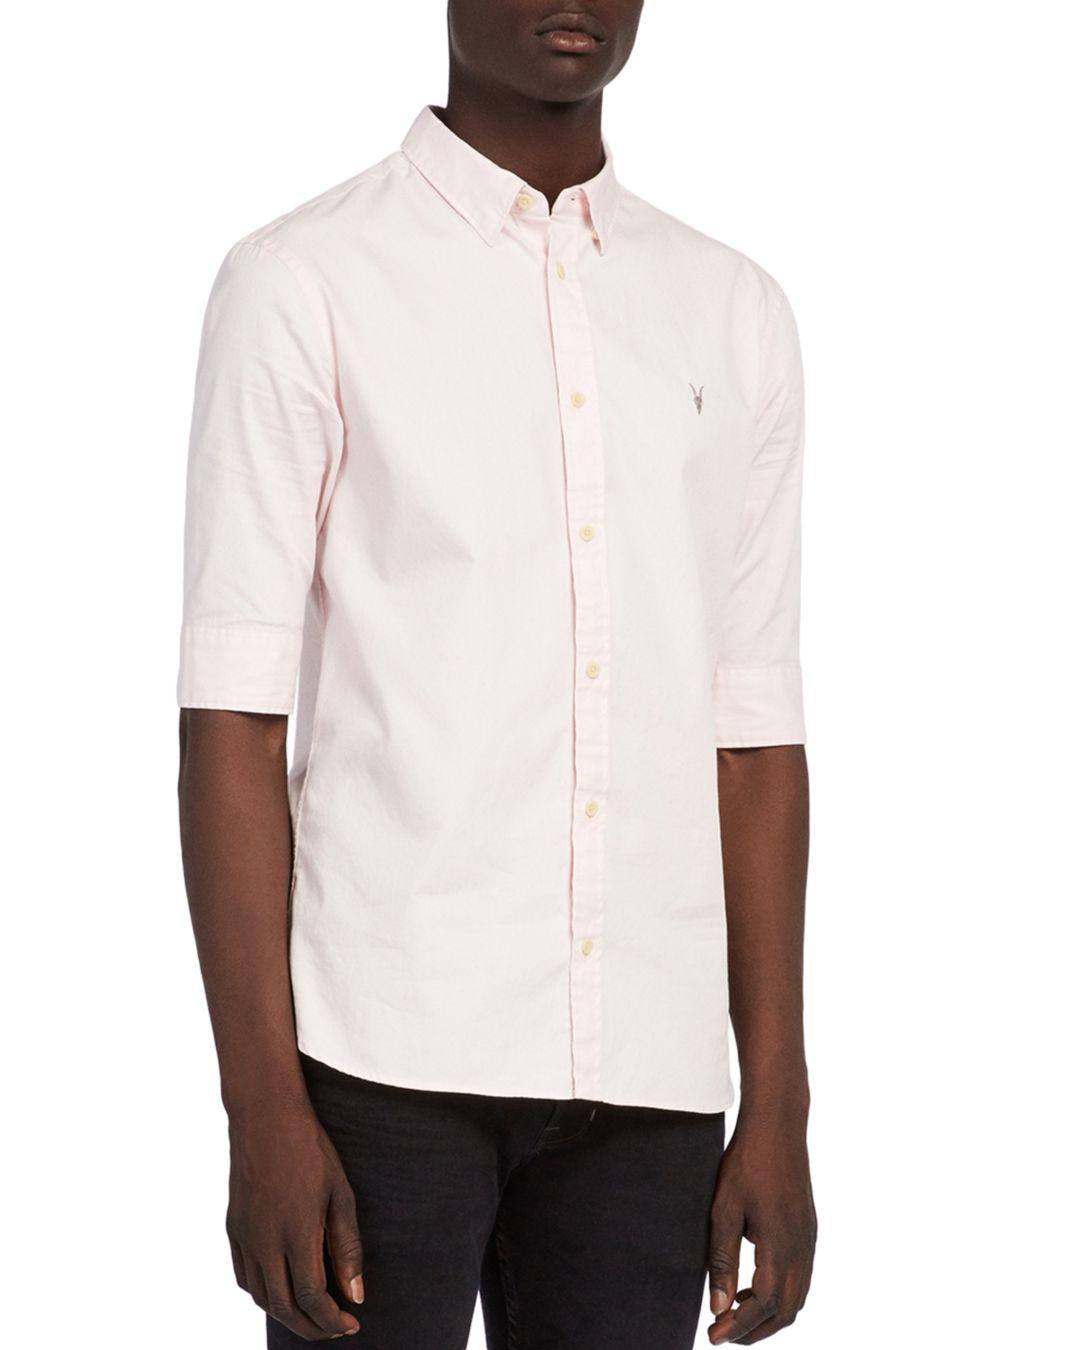 AllSaints Cotton Redondo Half-sleeved Shirt in Pale Pink (Pink) for Men